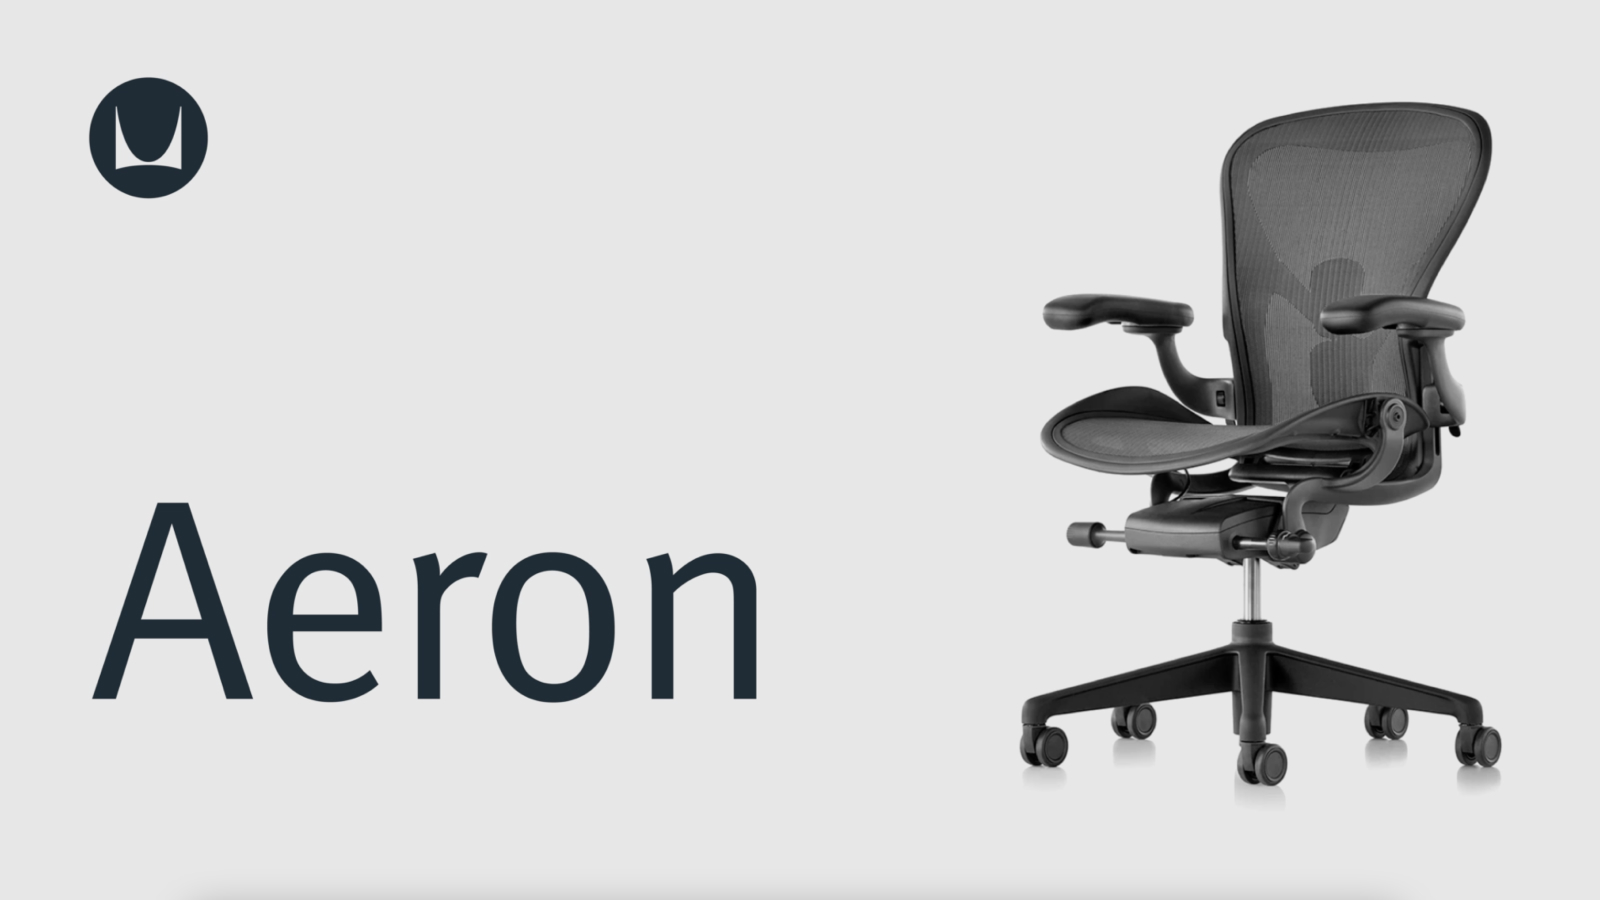 A Black Aeron Chair Viewed From An Angle